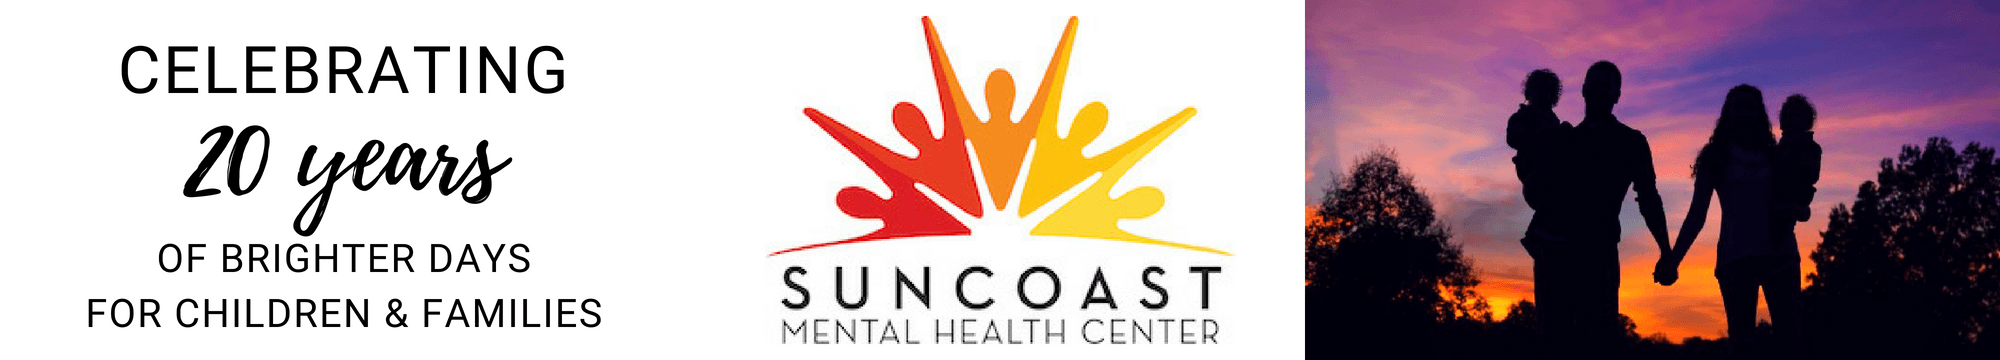 Suncoast Mental Health Center